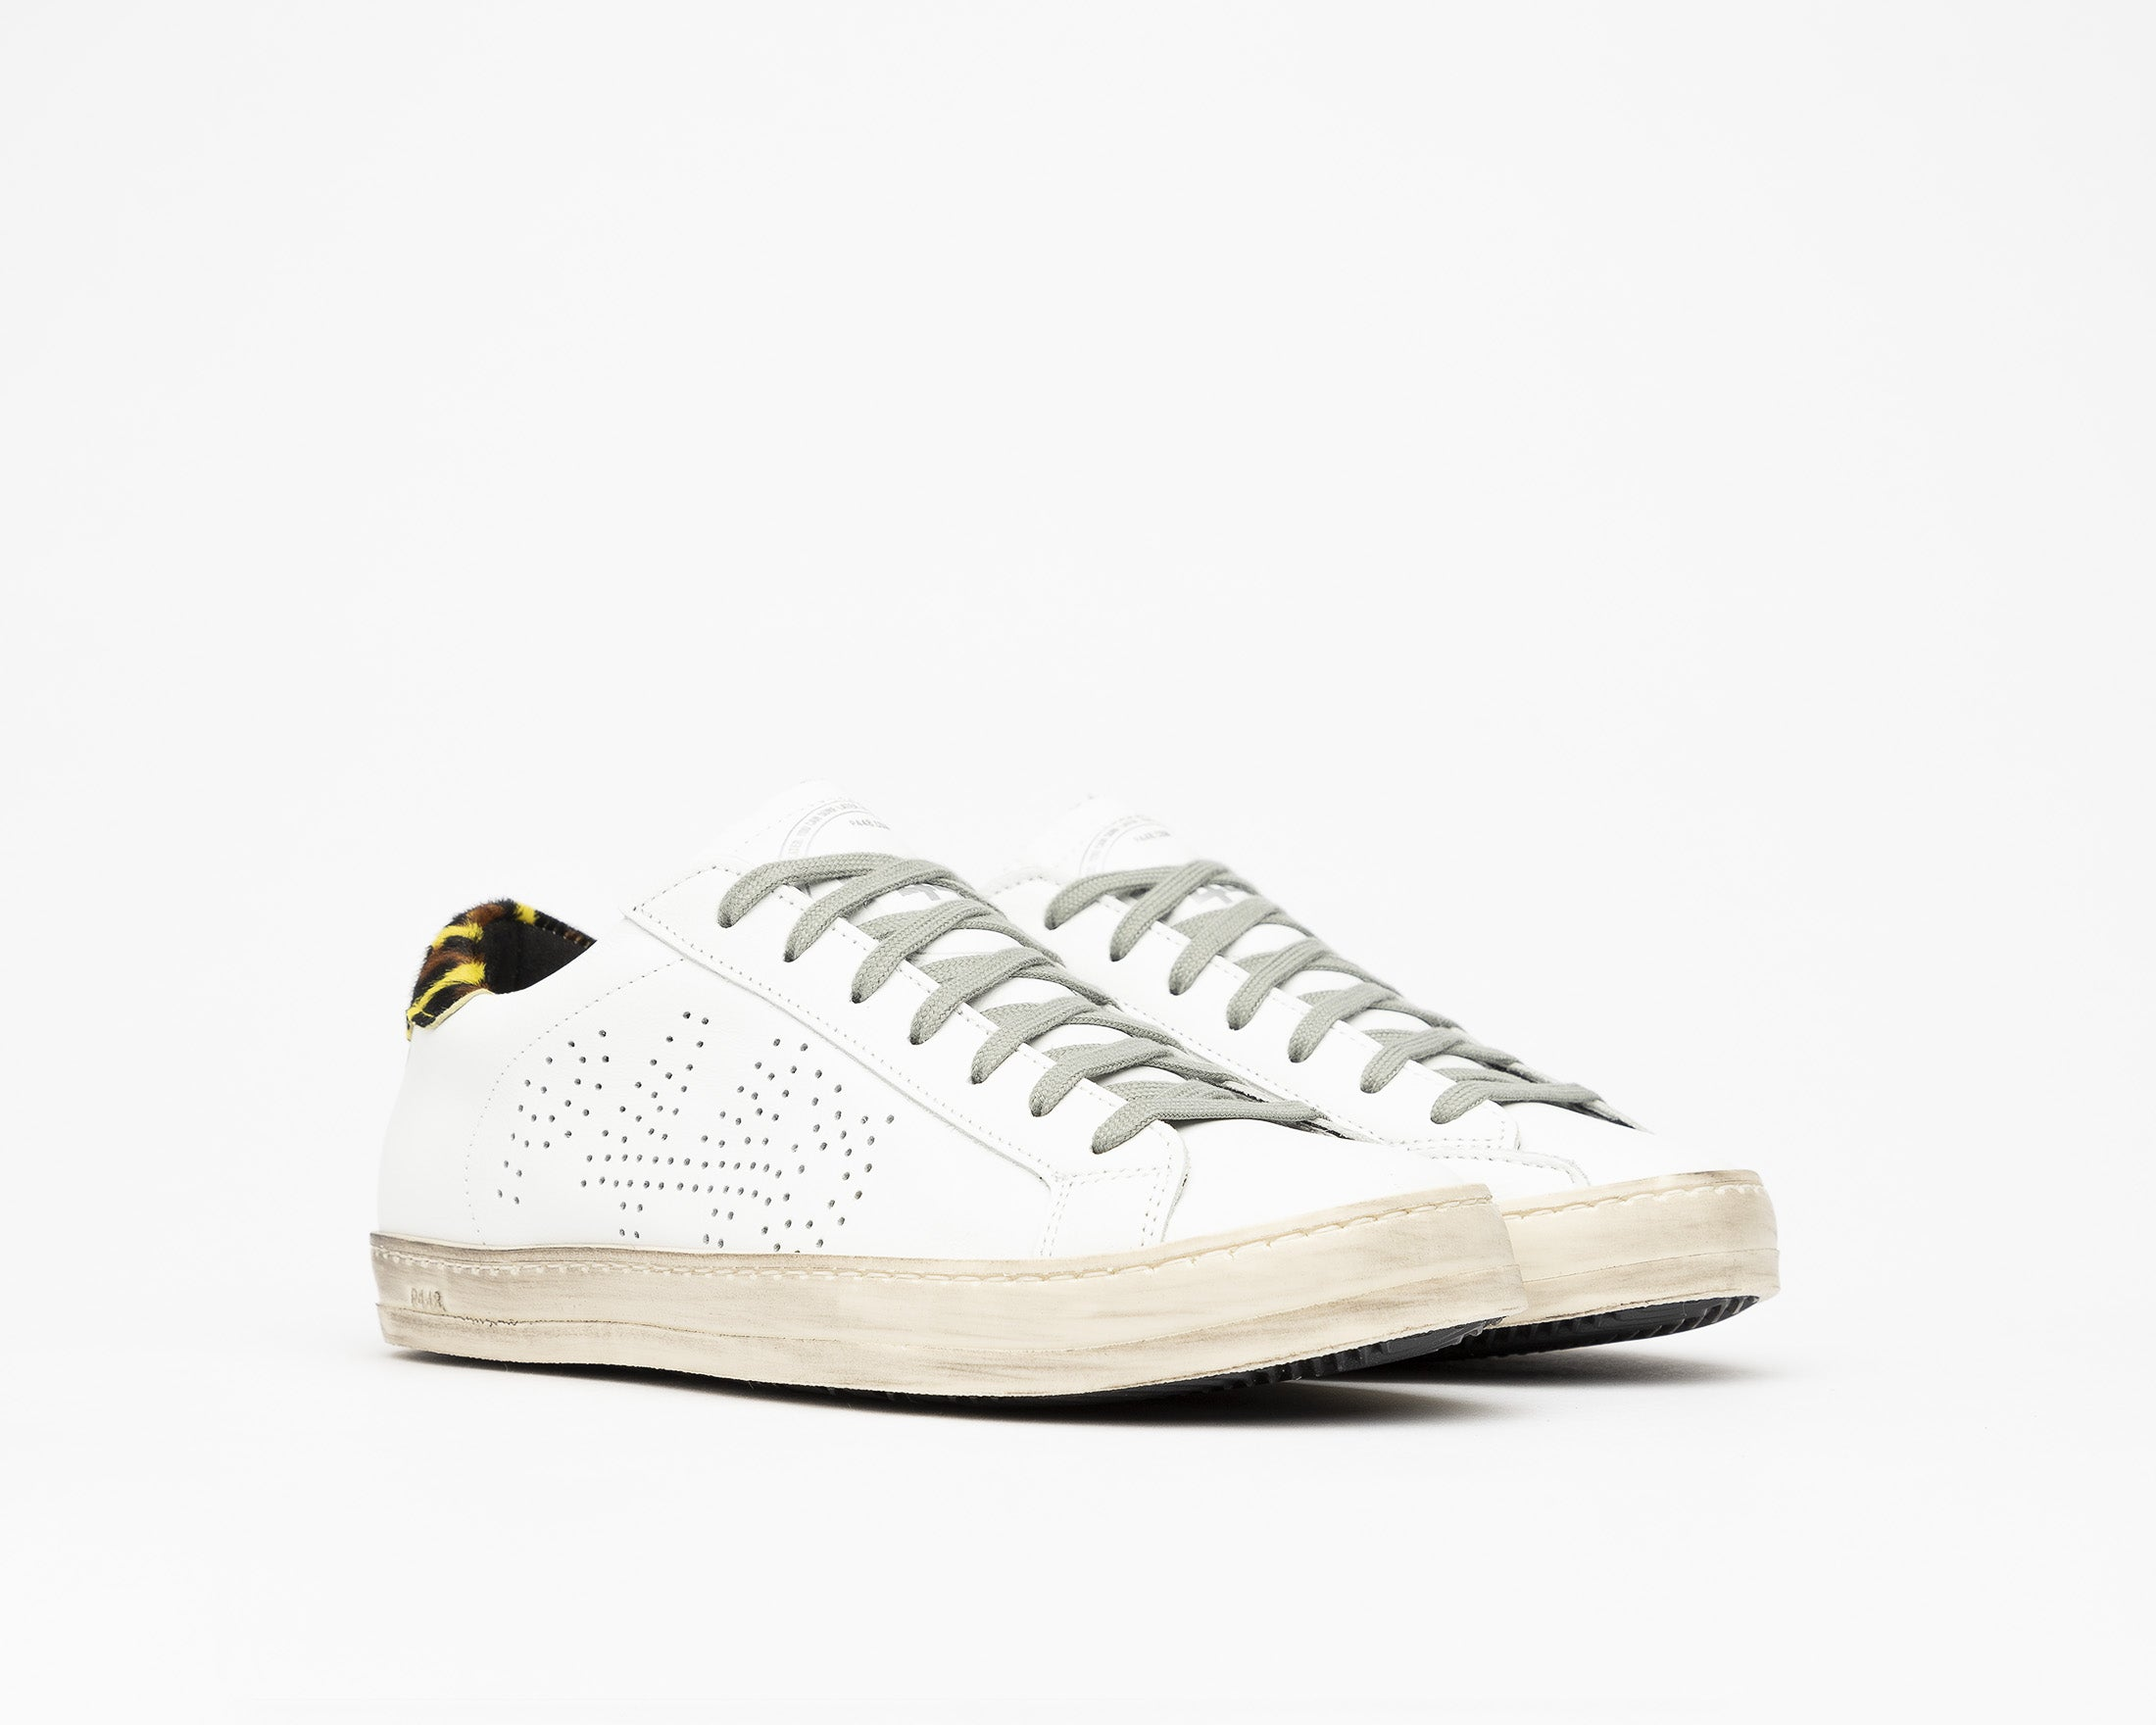 John Low-Top Sneaker in White/Cleo Yellow - Side